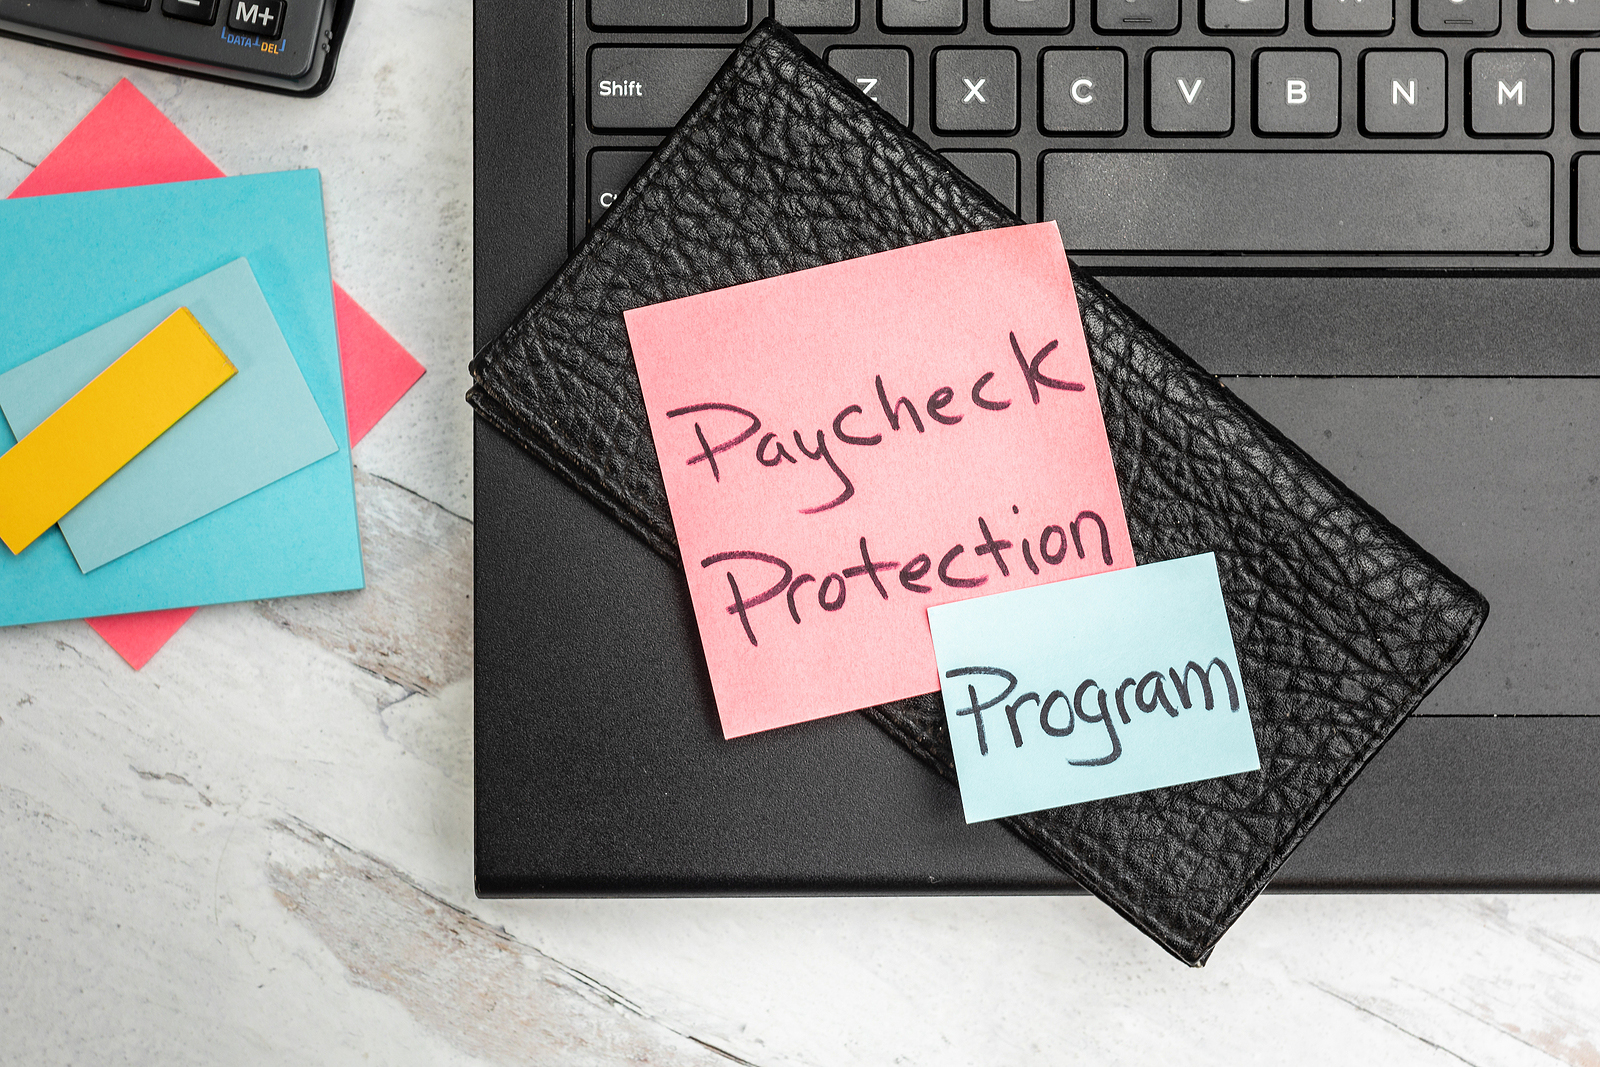 a notebook with sticky notes, paycheck protection program